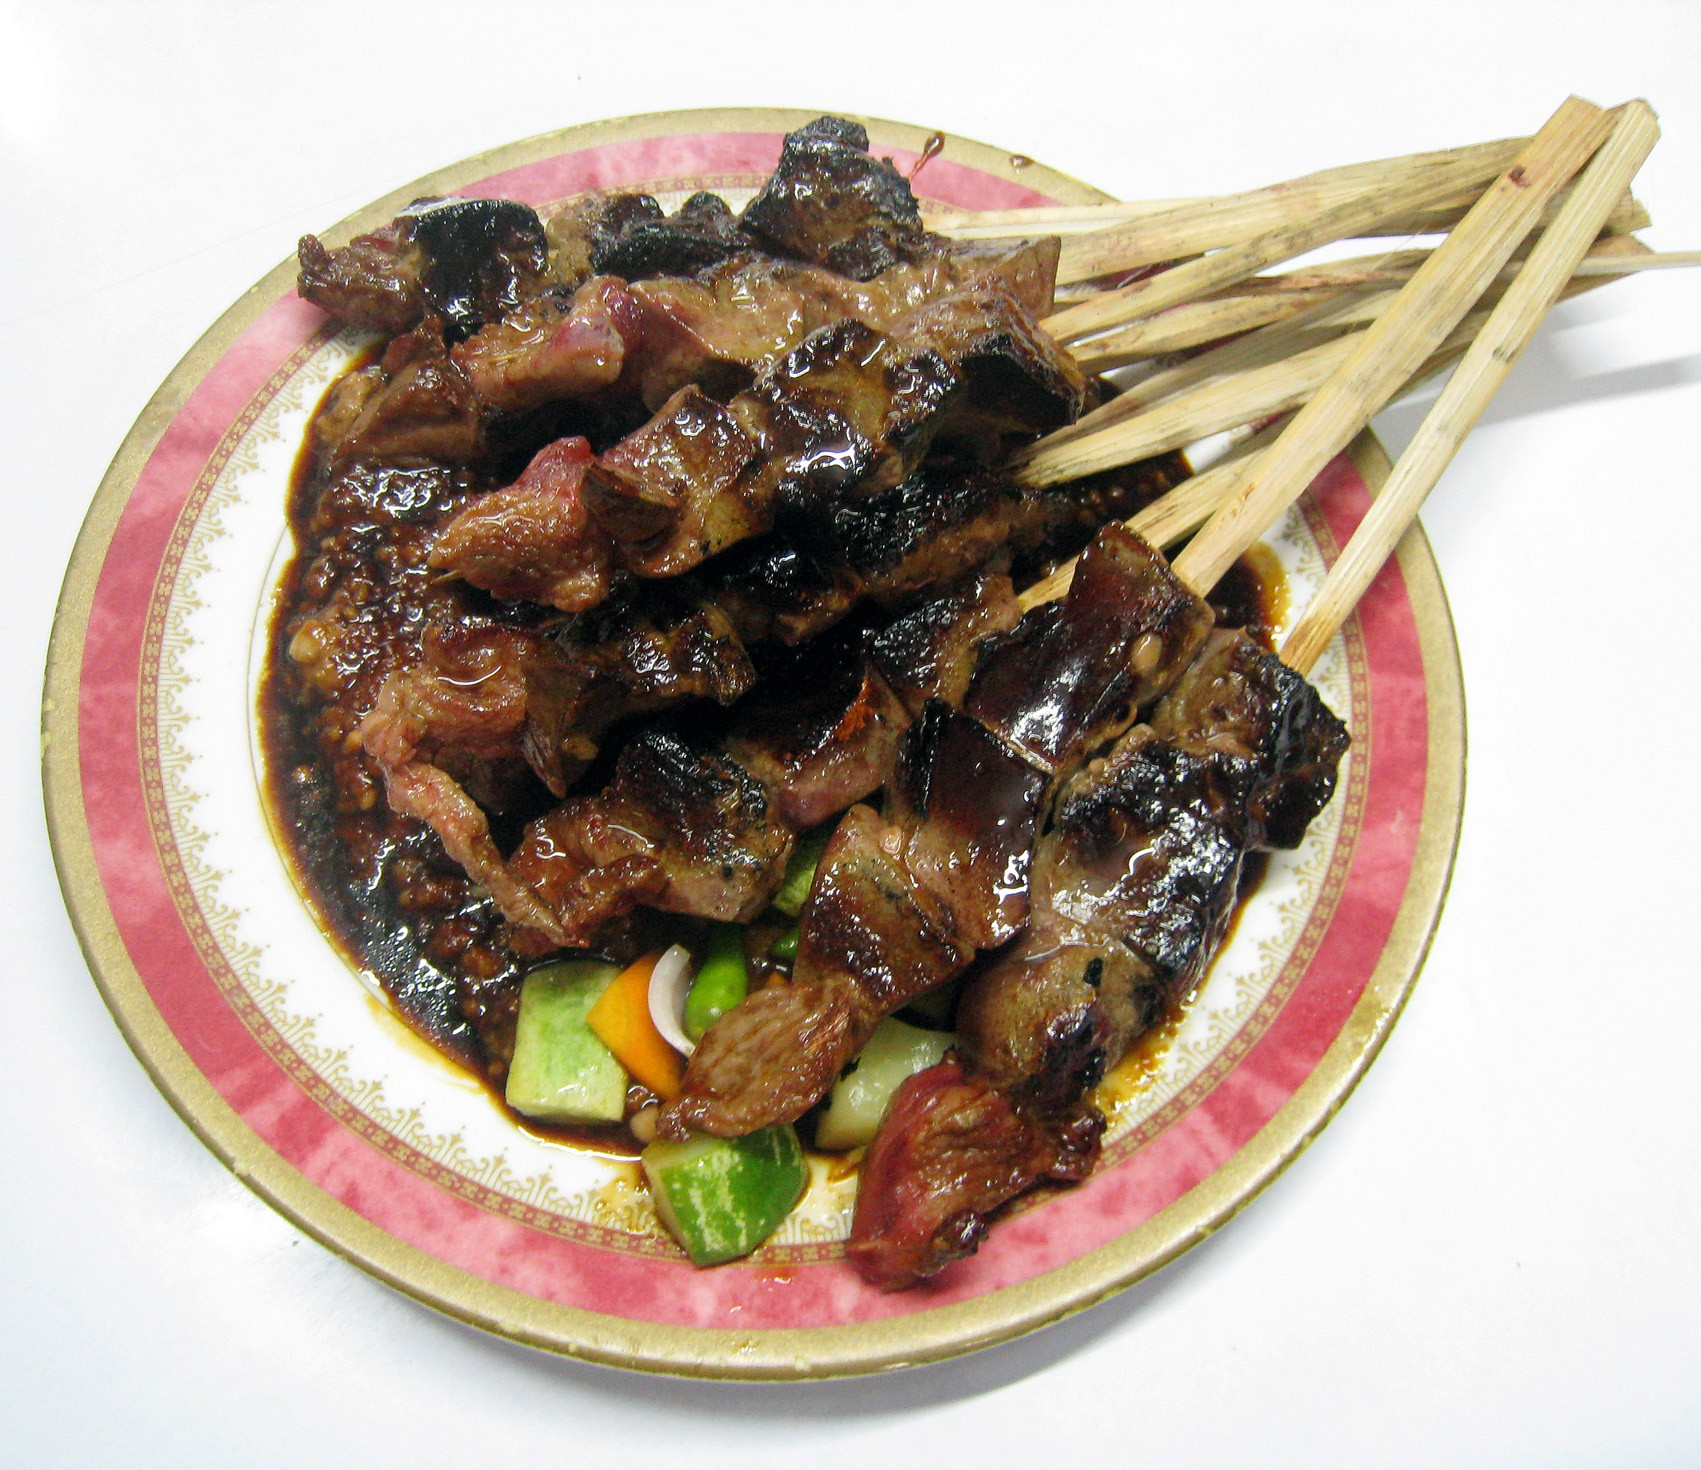 The goat liver satay in a satay restaurant at Jalan Sabang Central Jakarta The